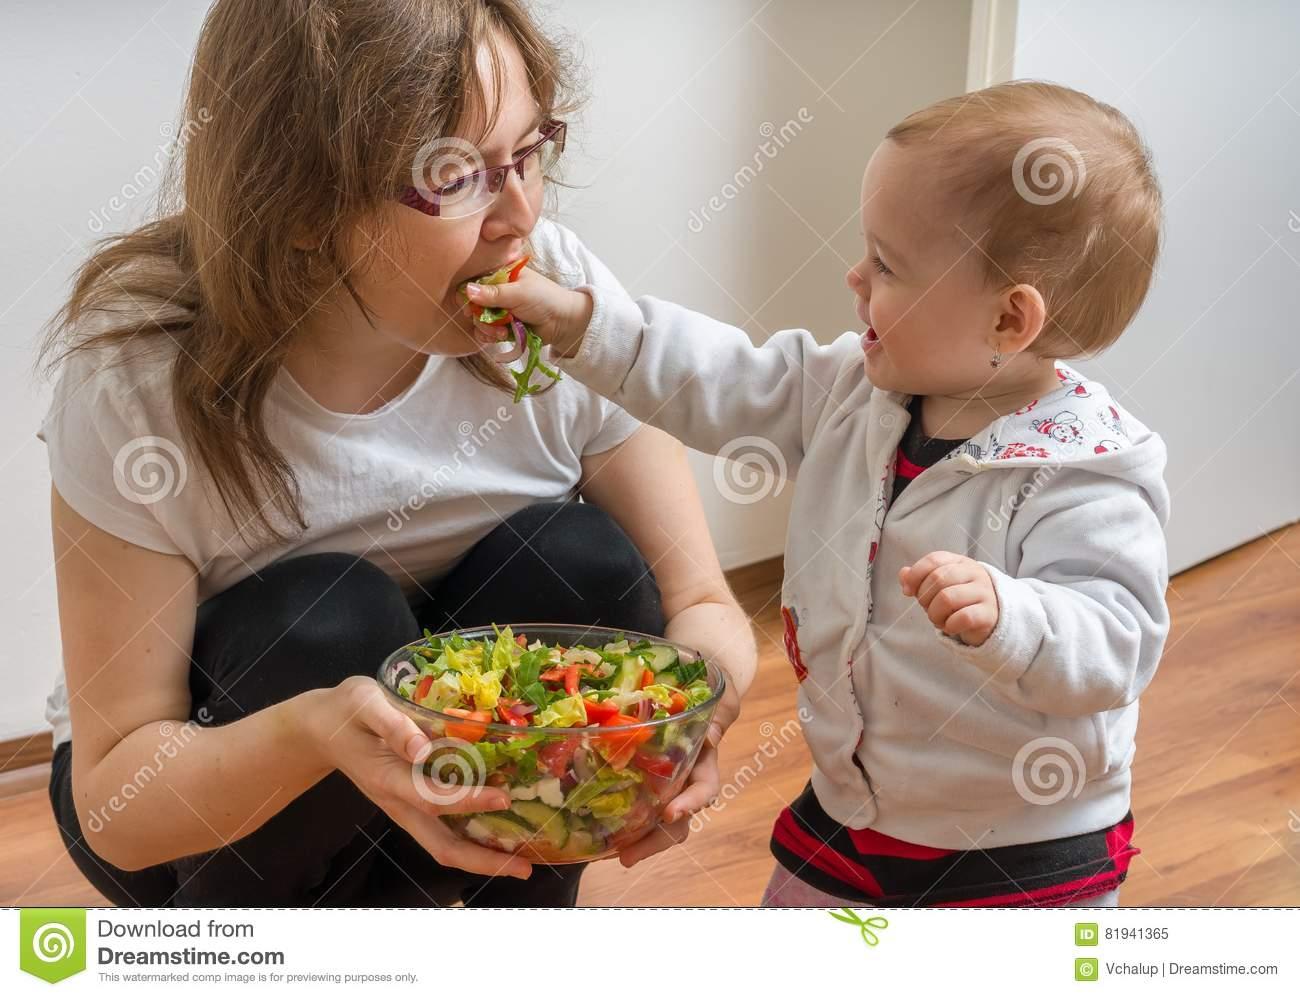 Mother and her daughter having fun and playing. Little child is feeding her mother with salad